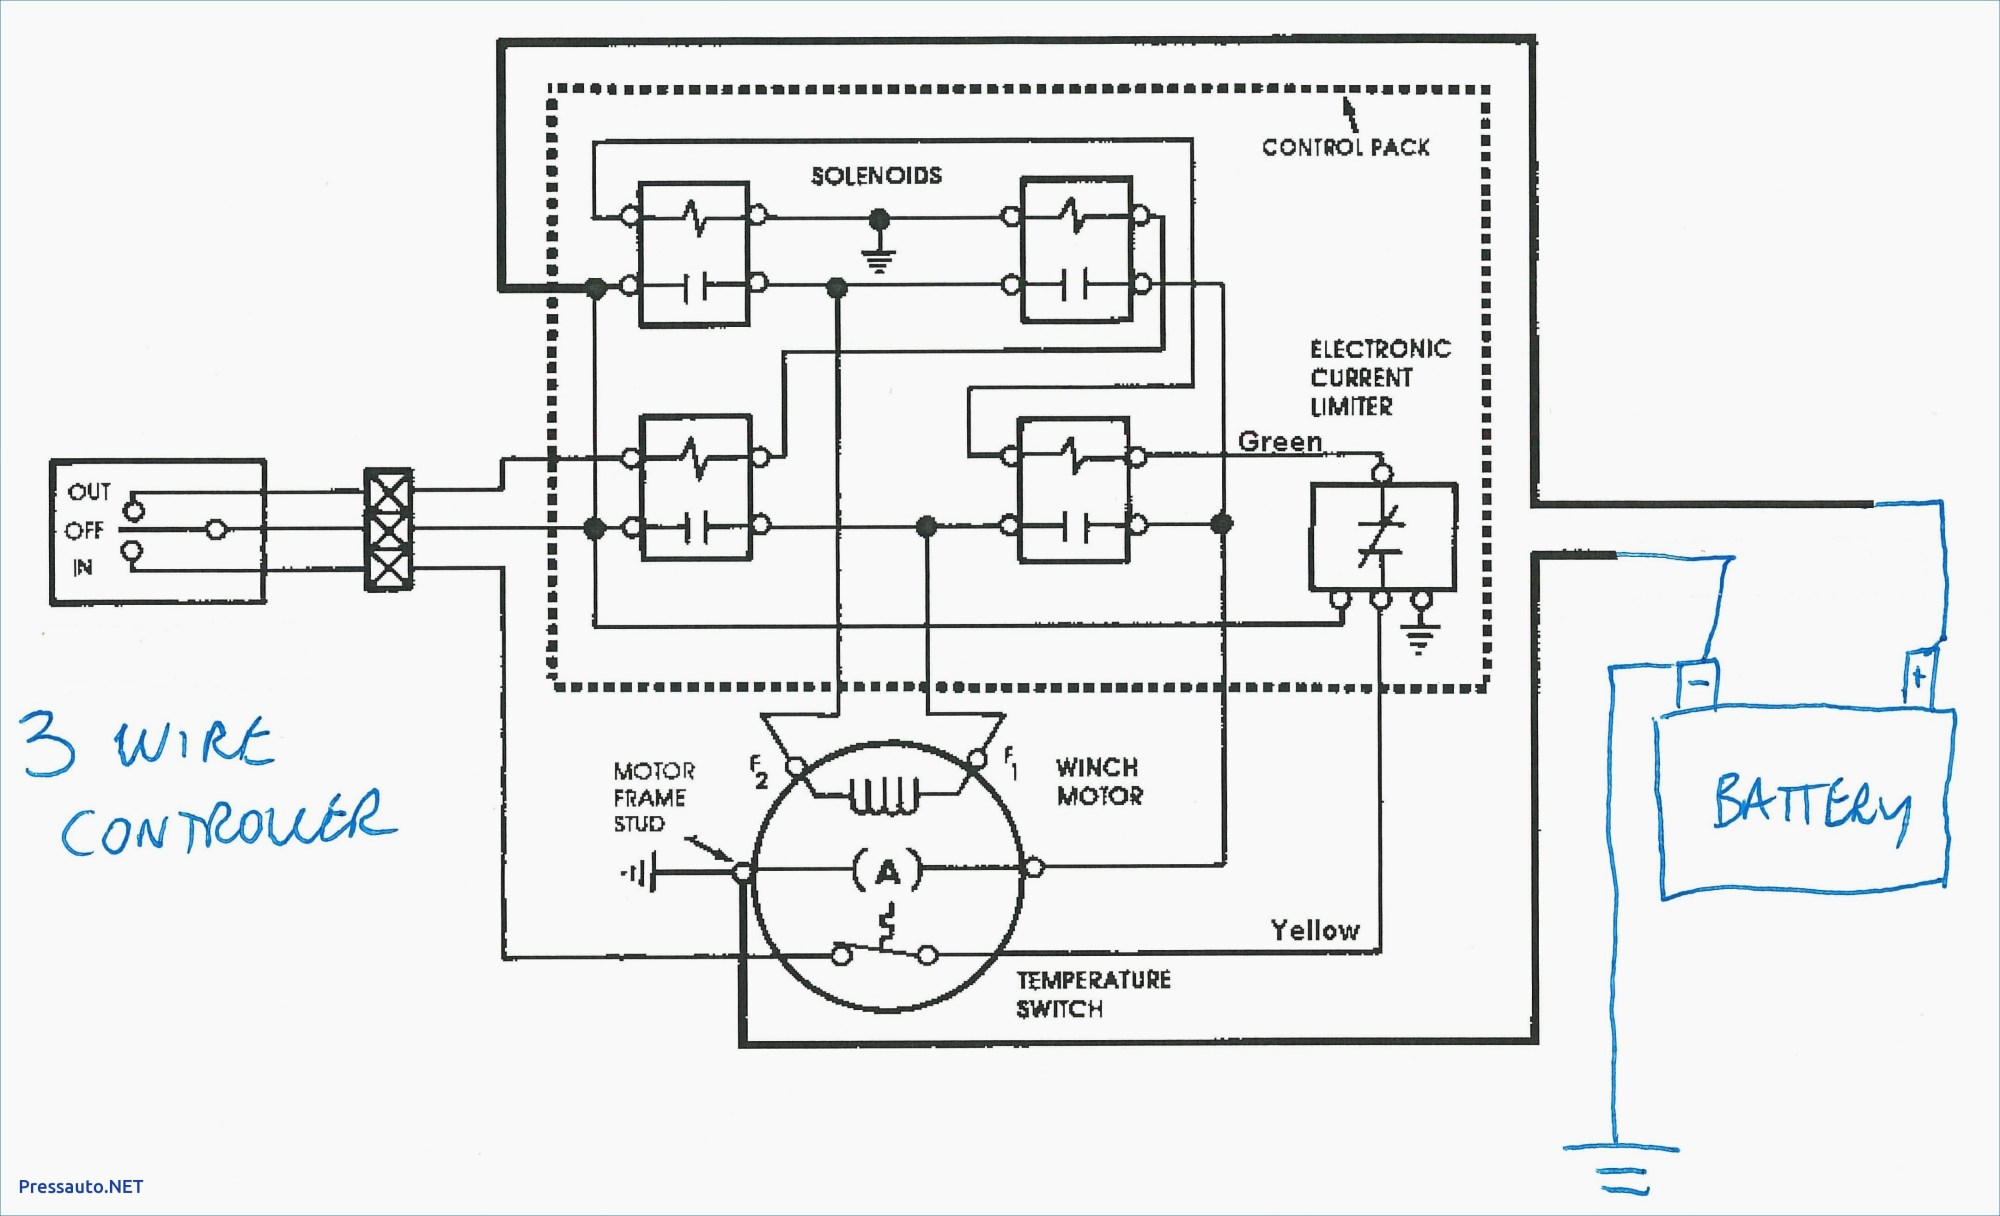 hight resolution of 12v starter solenoid wiring diagram unique pretty 12 volt solenoid wiring diagram electrical and